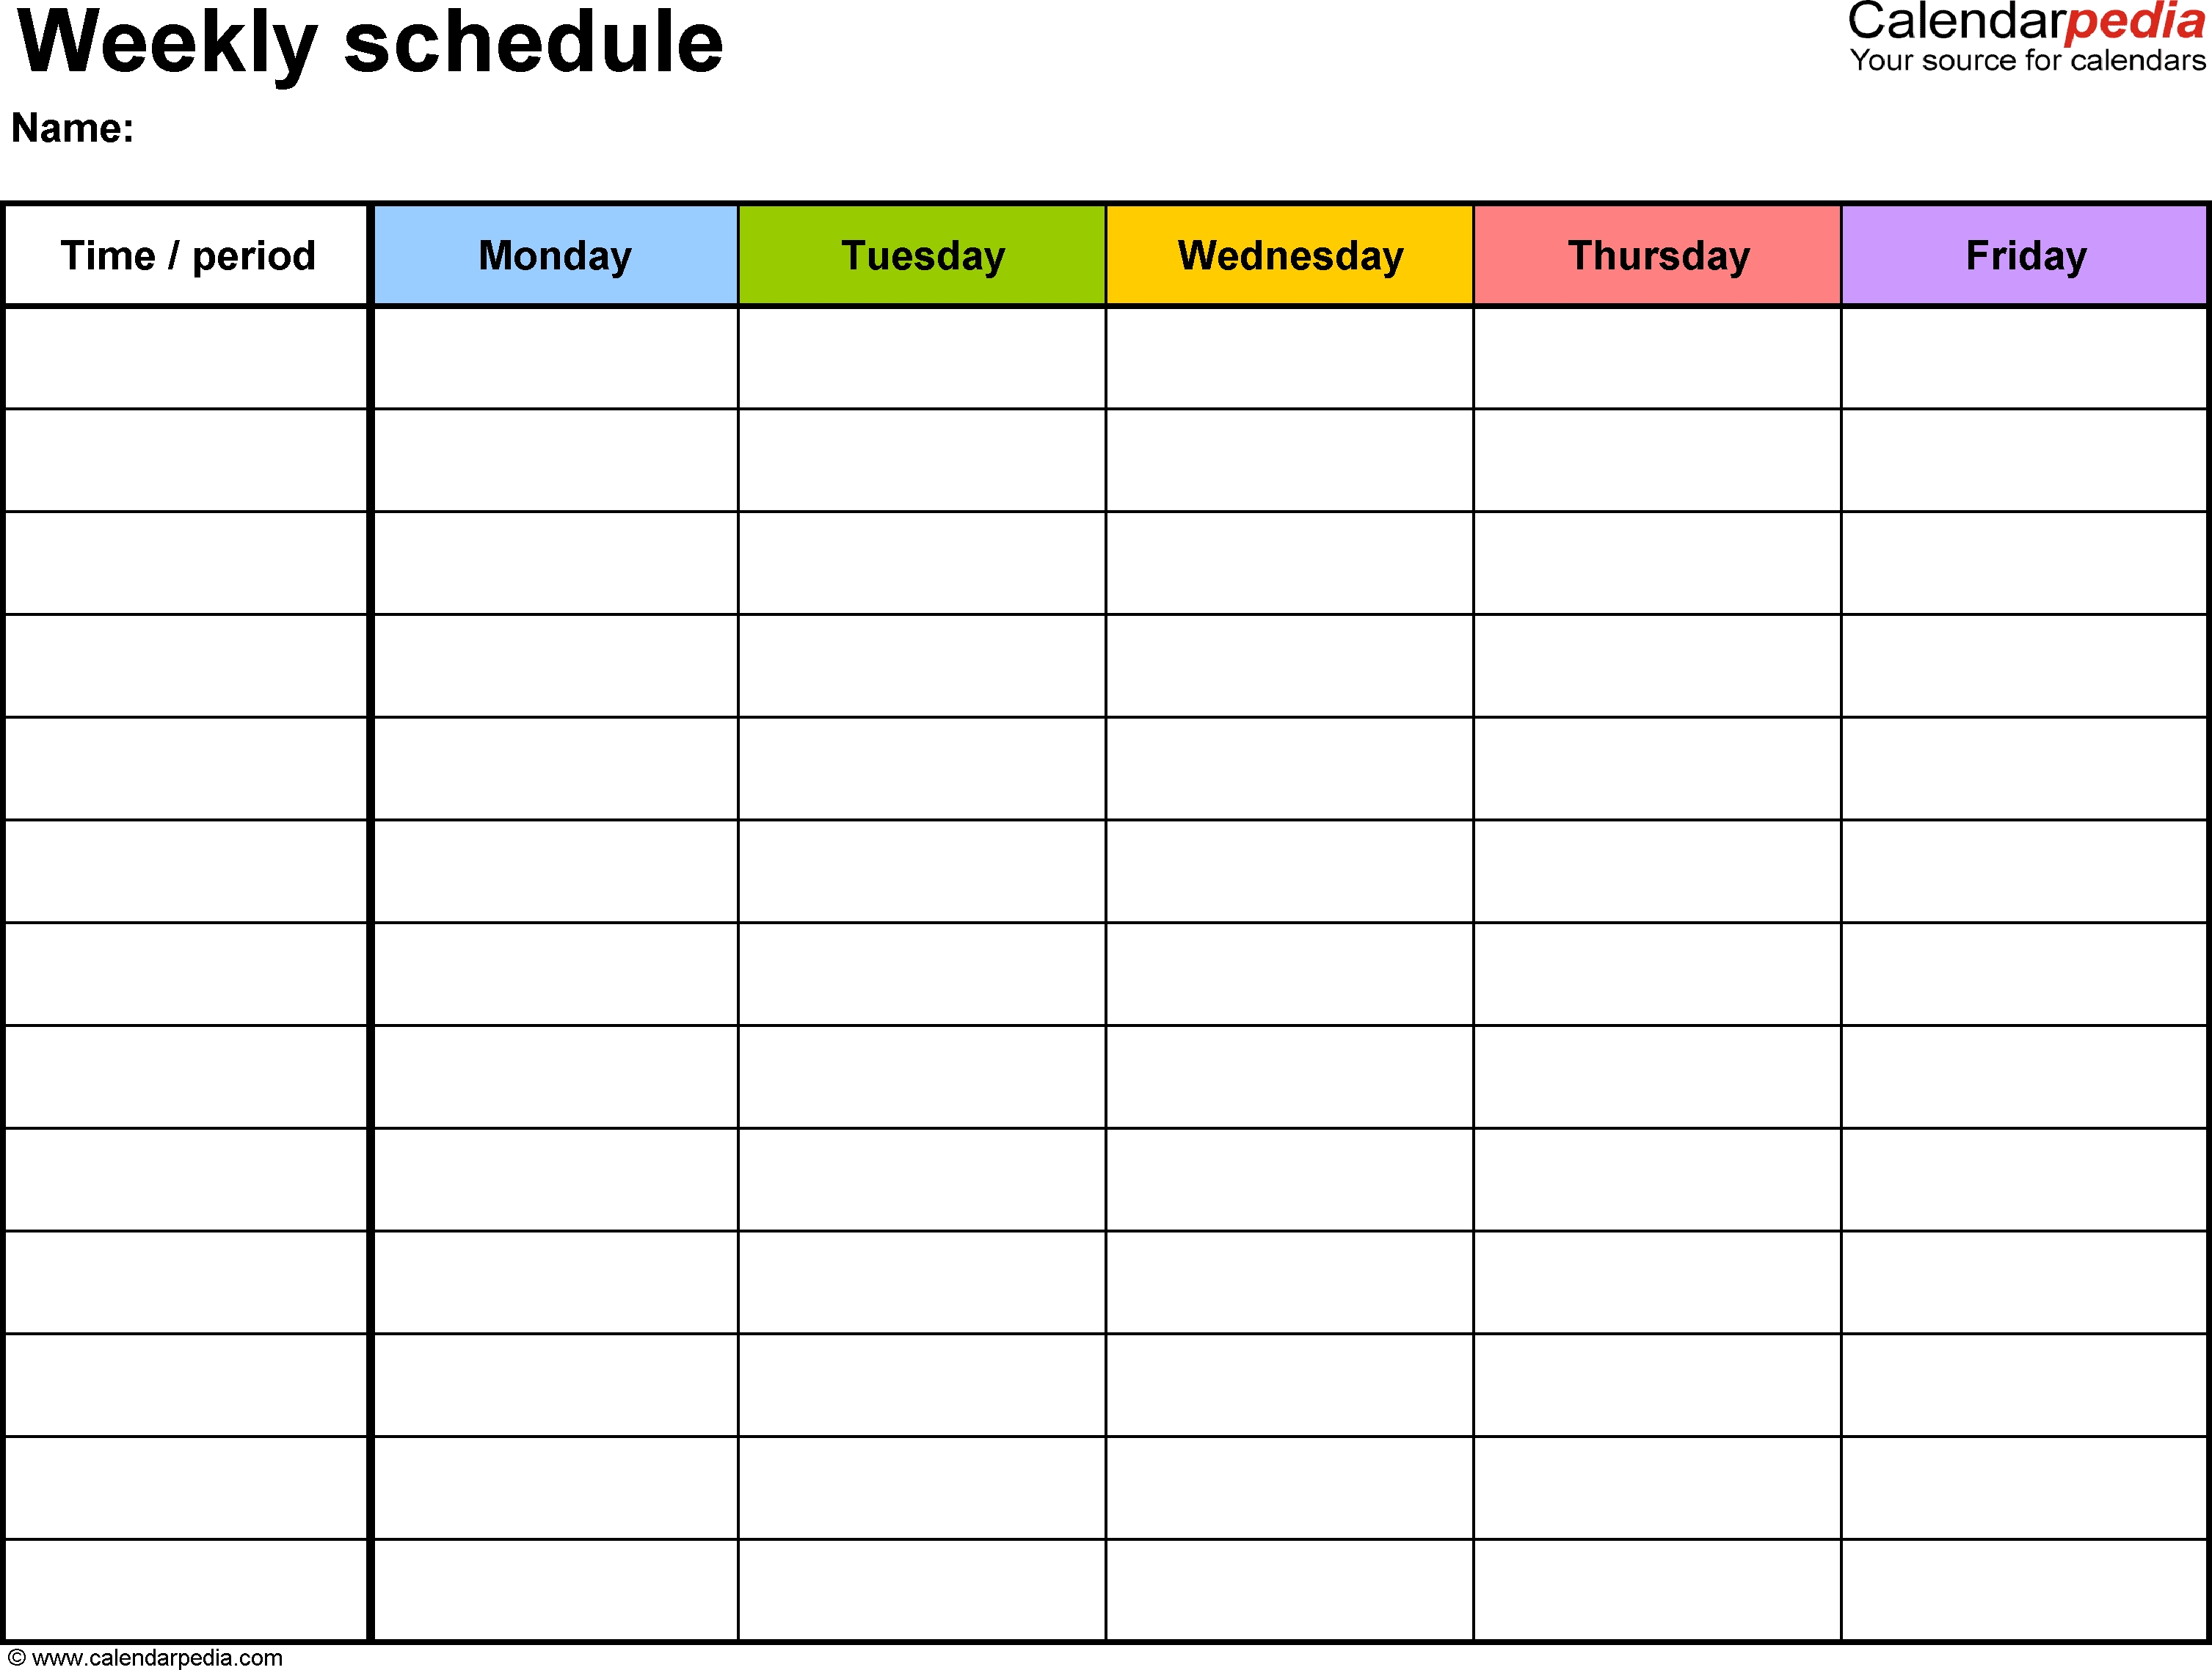 Free Weekly Schedule Templates For Pdf - 18 Templates 7 Day Calendar Template Free